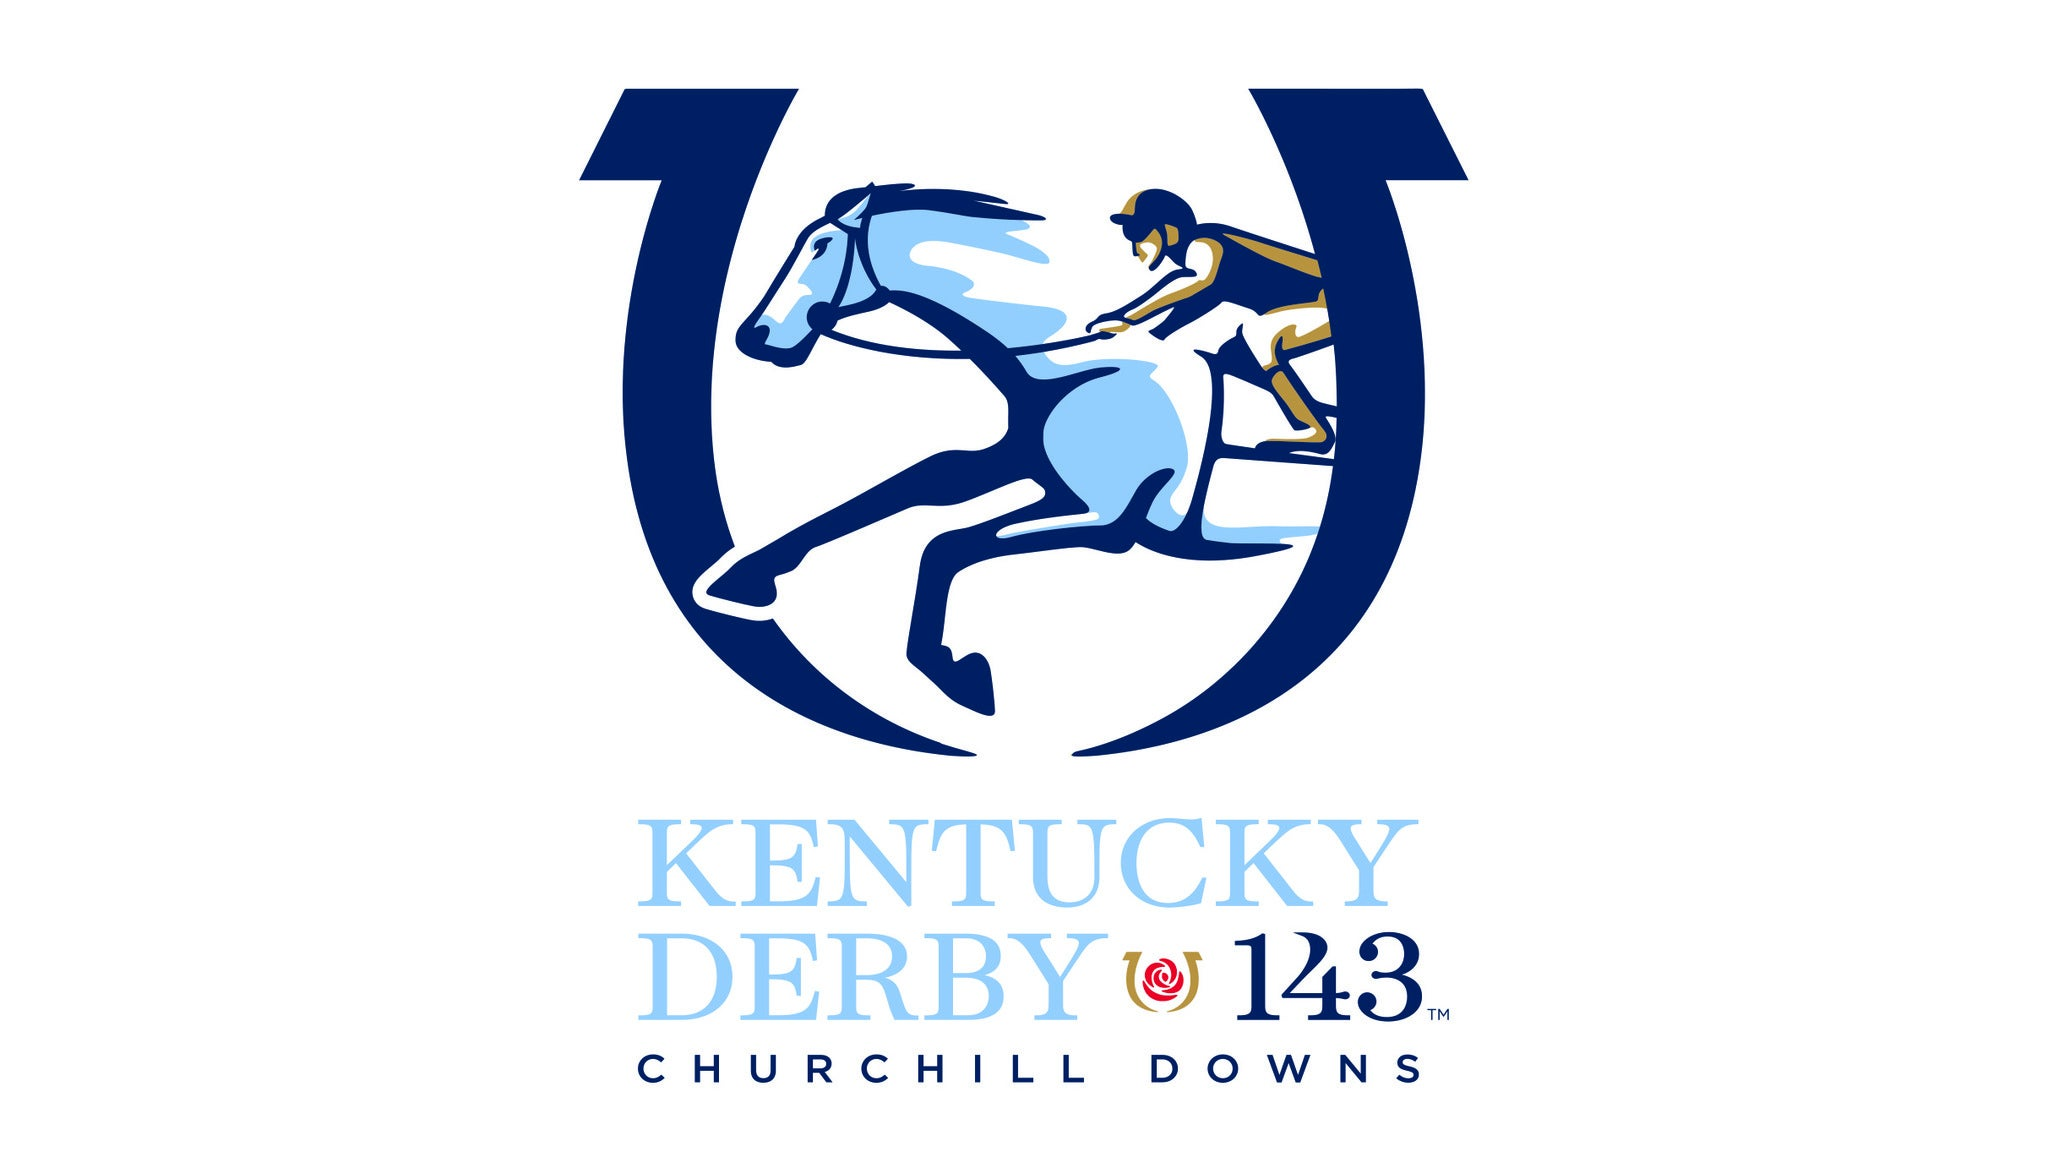 143rd Kentucky Derby - Clubhouse Walk - No Seat